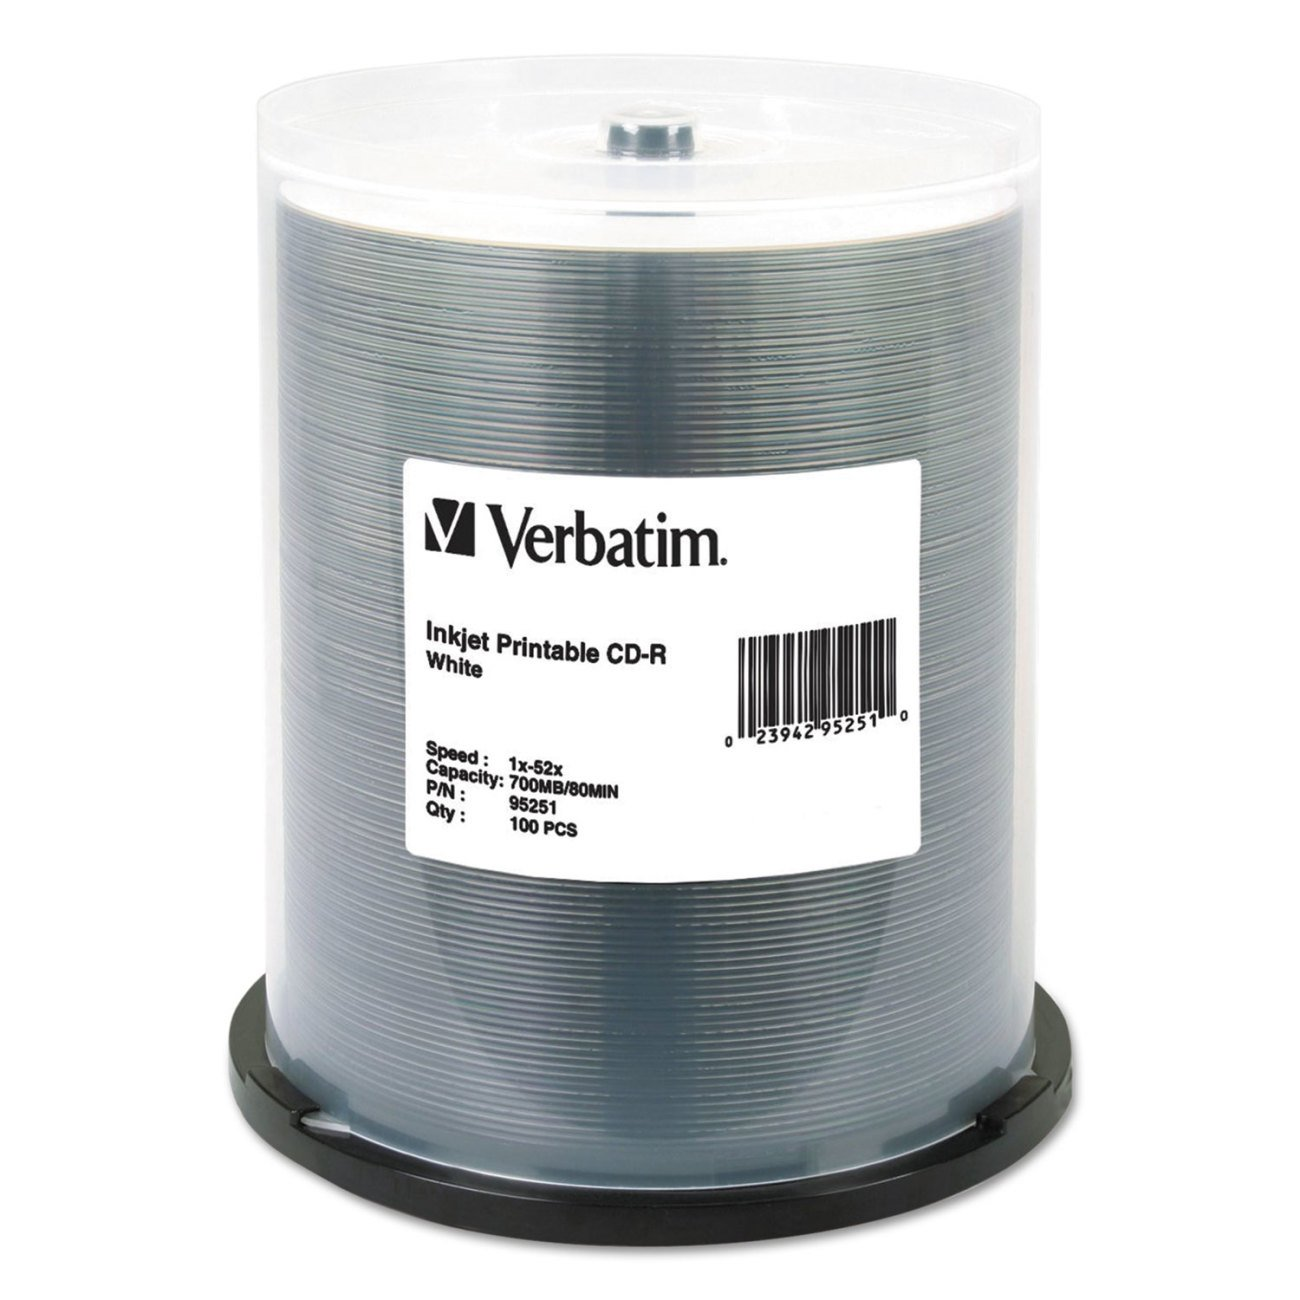 Verbatim CD-R 700MB 52X White Inkjet Printable Recordable Media Disc - 100pk Spindle by Verbatim